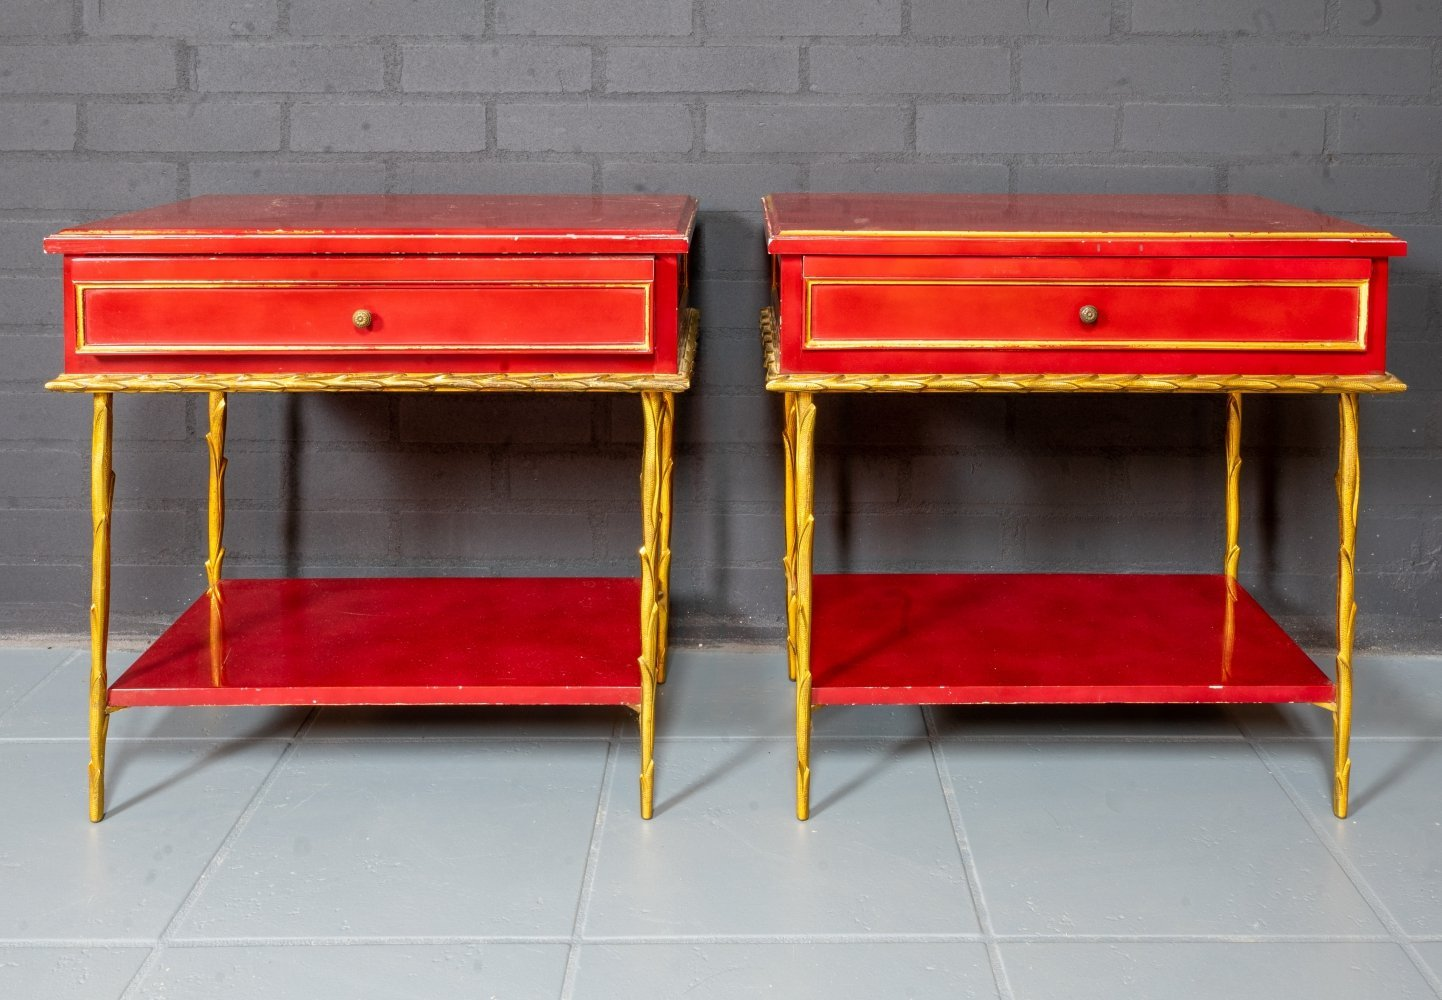 Set of 2 bedside tables, Italian design 1950s